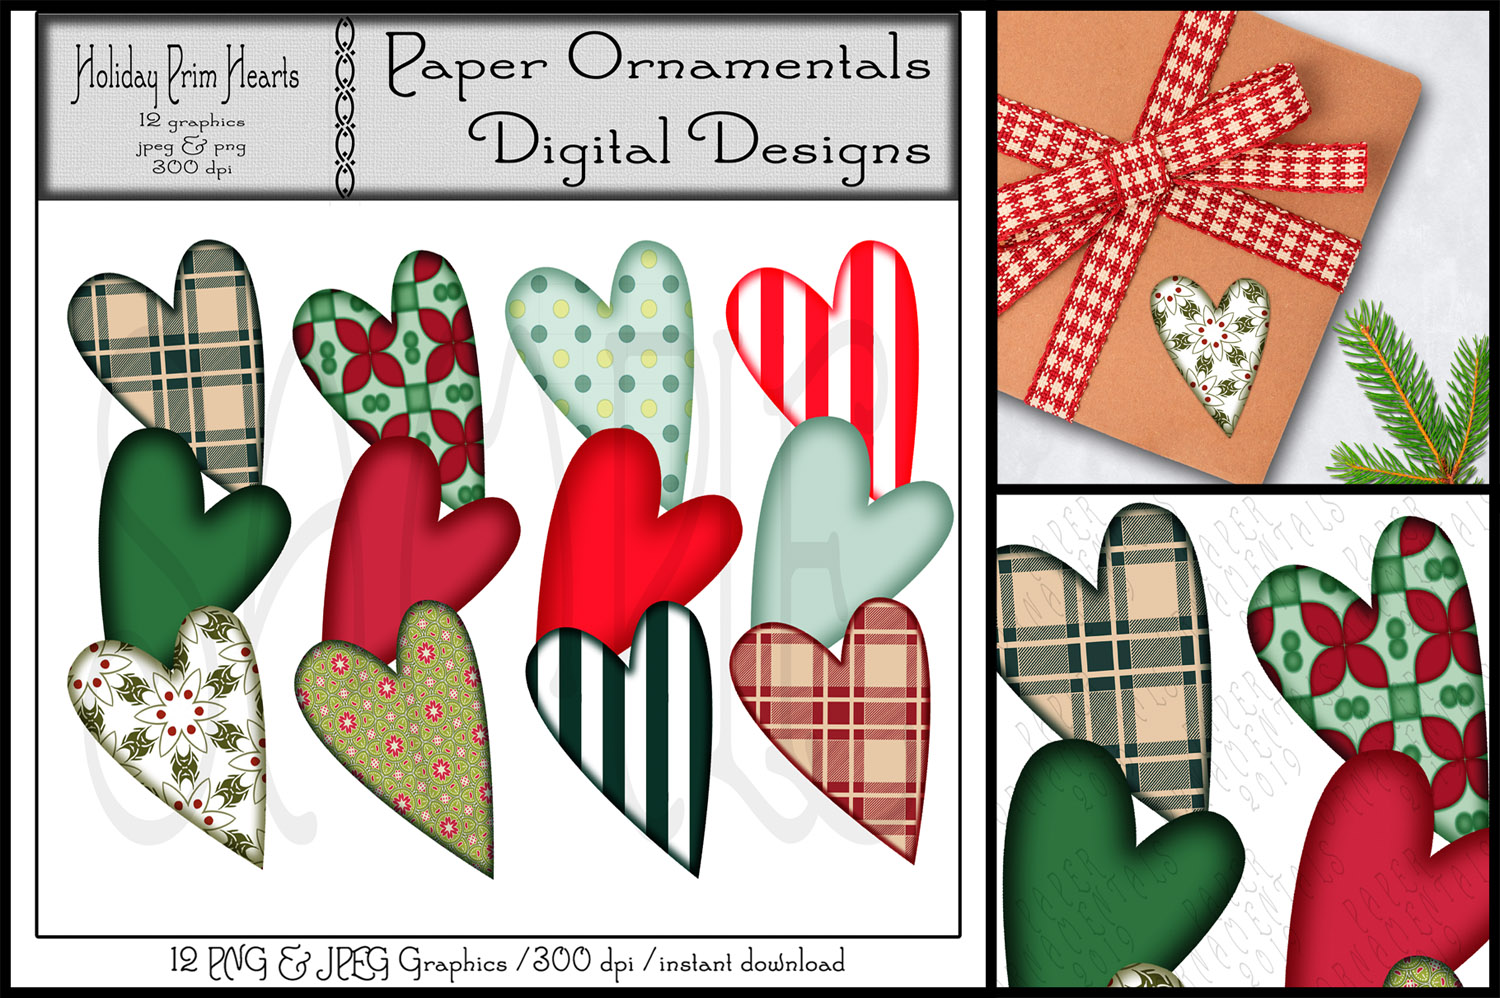 Christmas Clip Art, Holiday Primitive Hearts example image 1